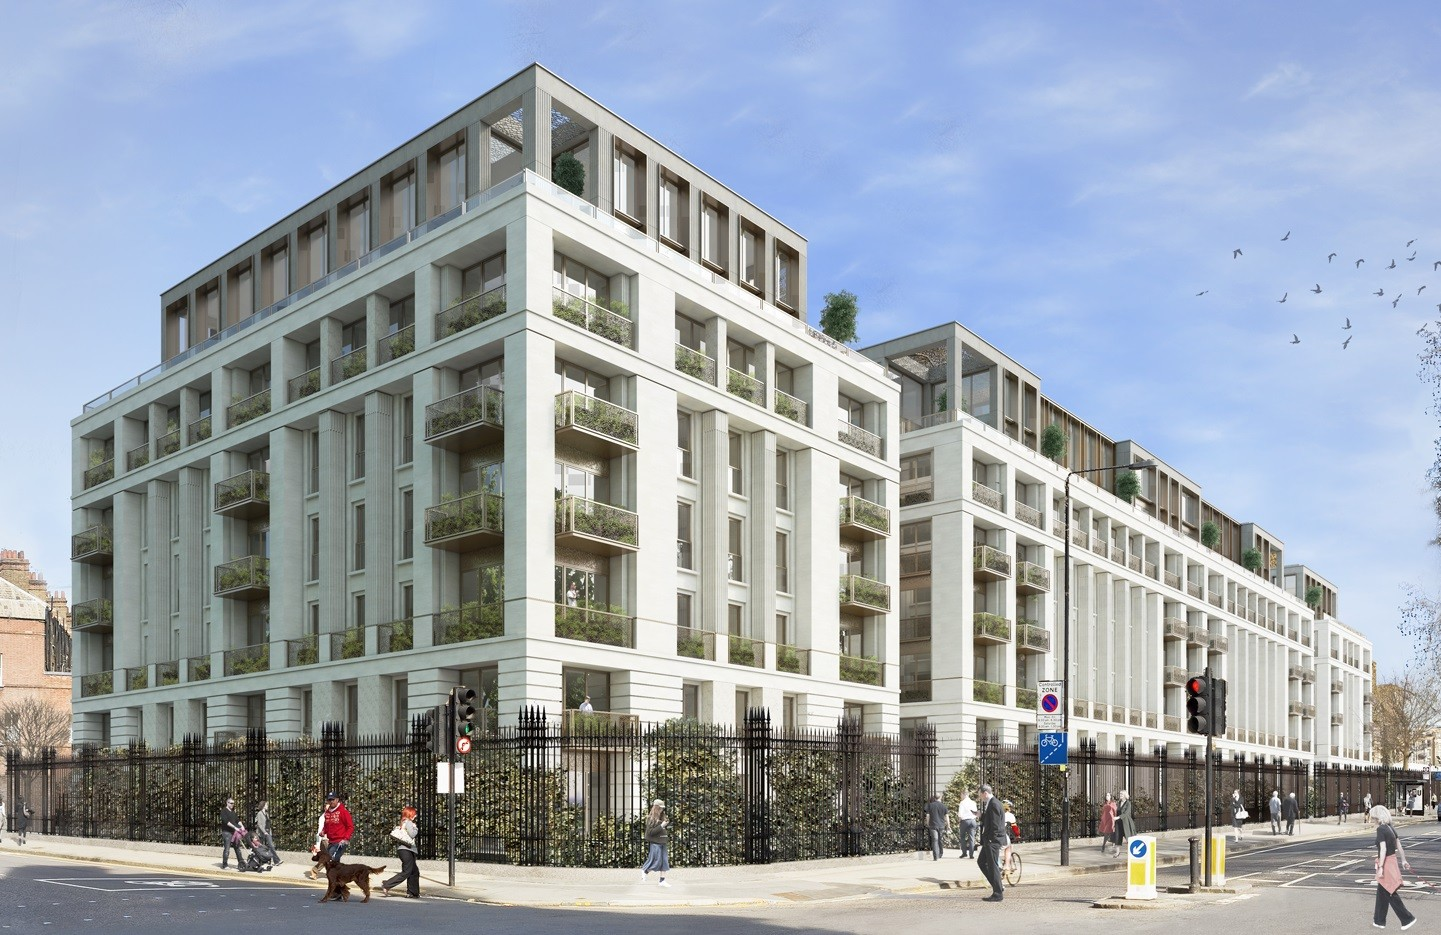 Gallery Of Planning Finally Granted For Chelsea Barracks